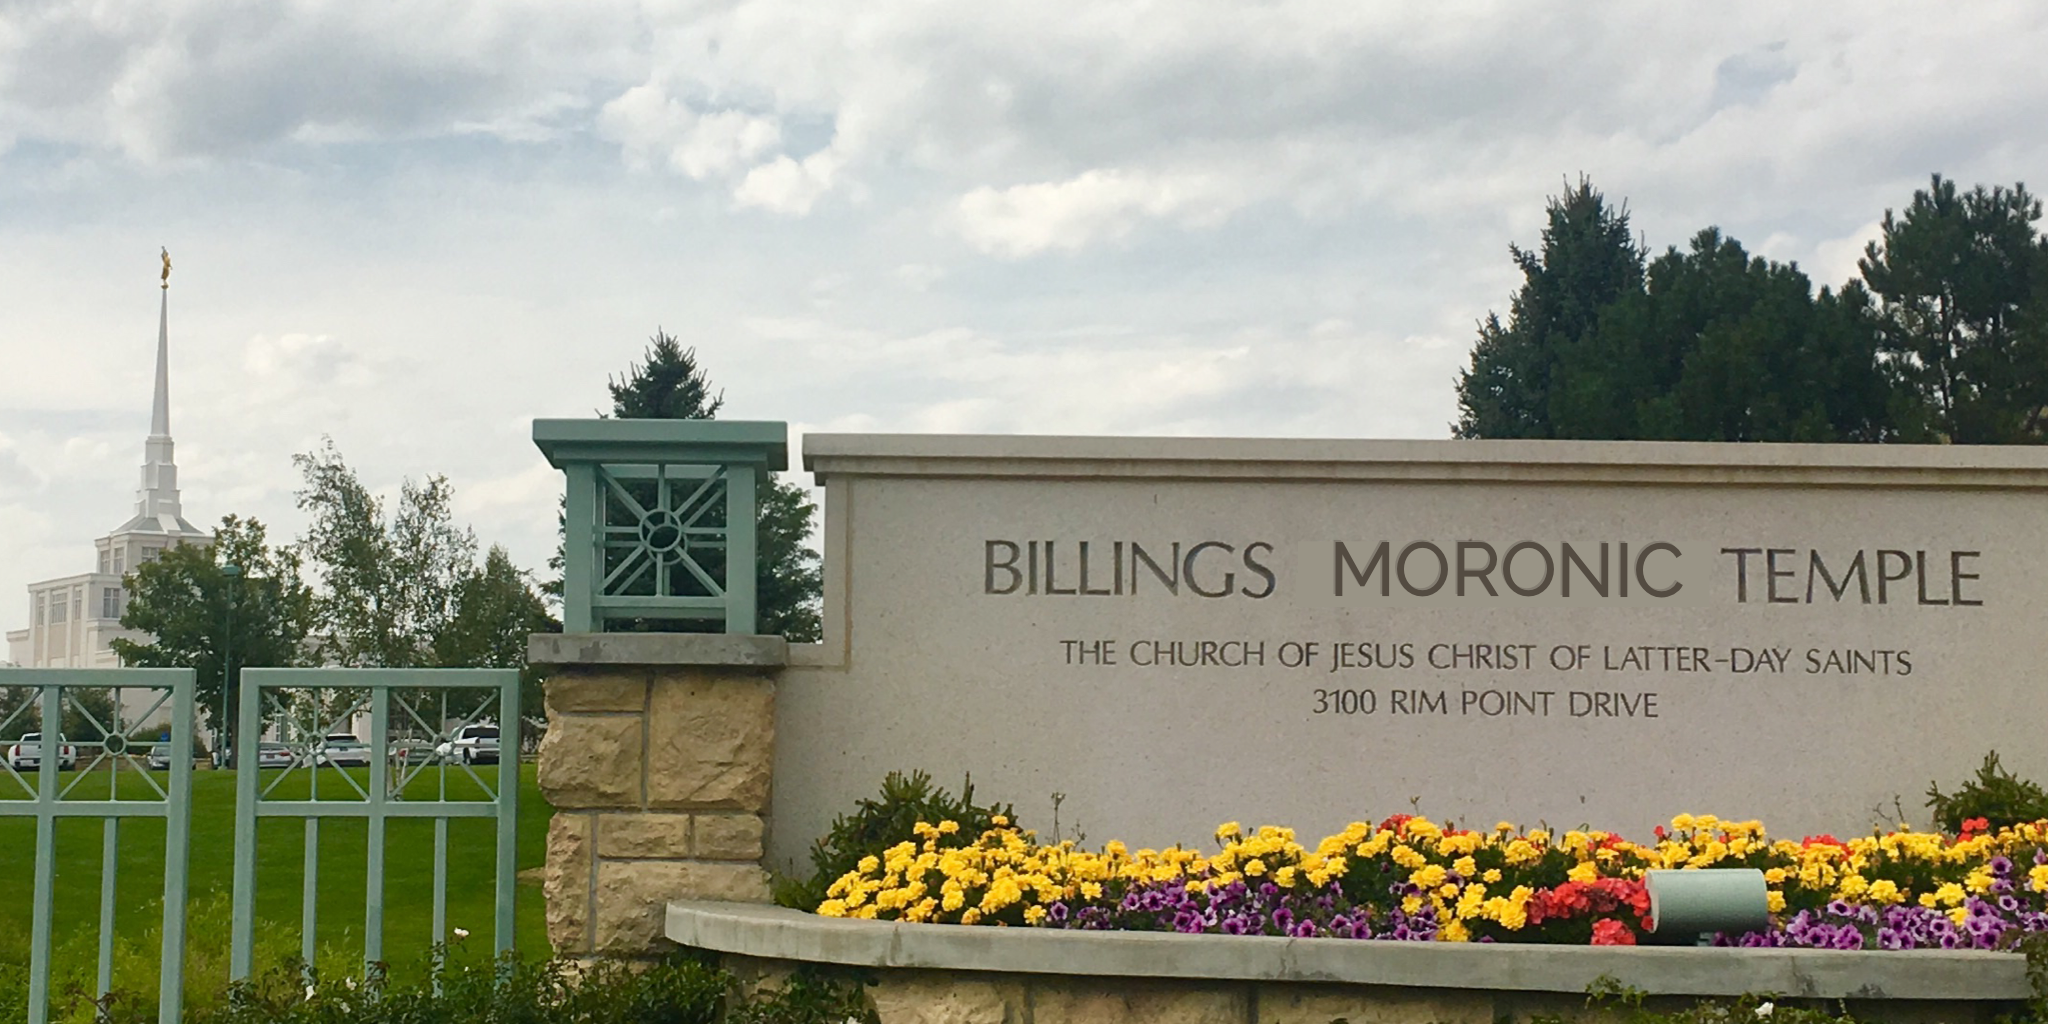 the first church to show their dedication to moroni